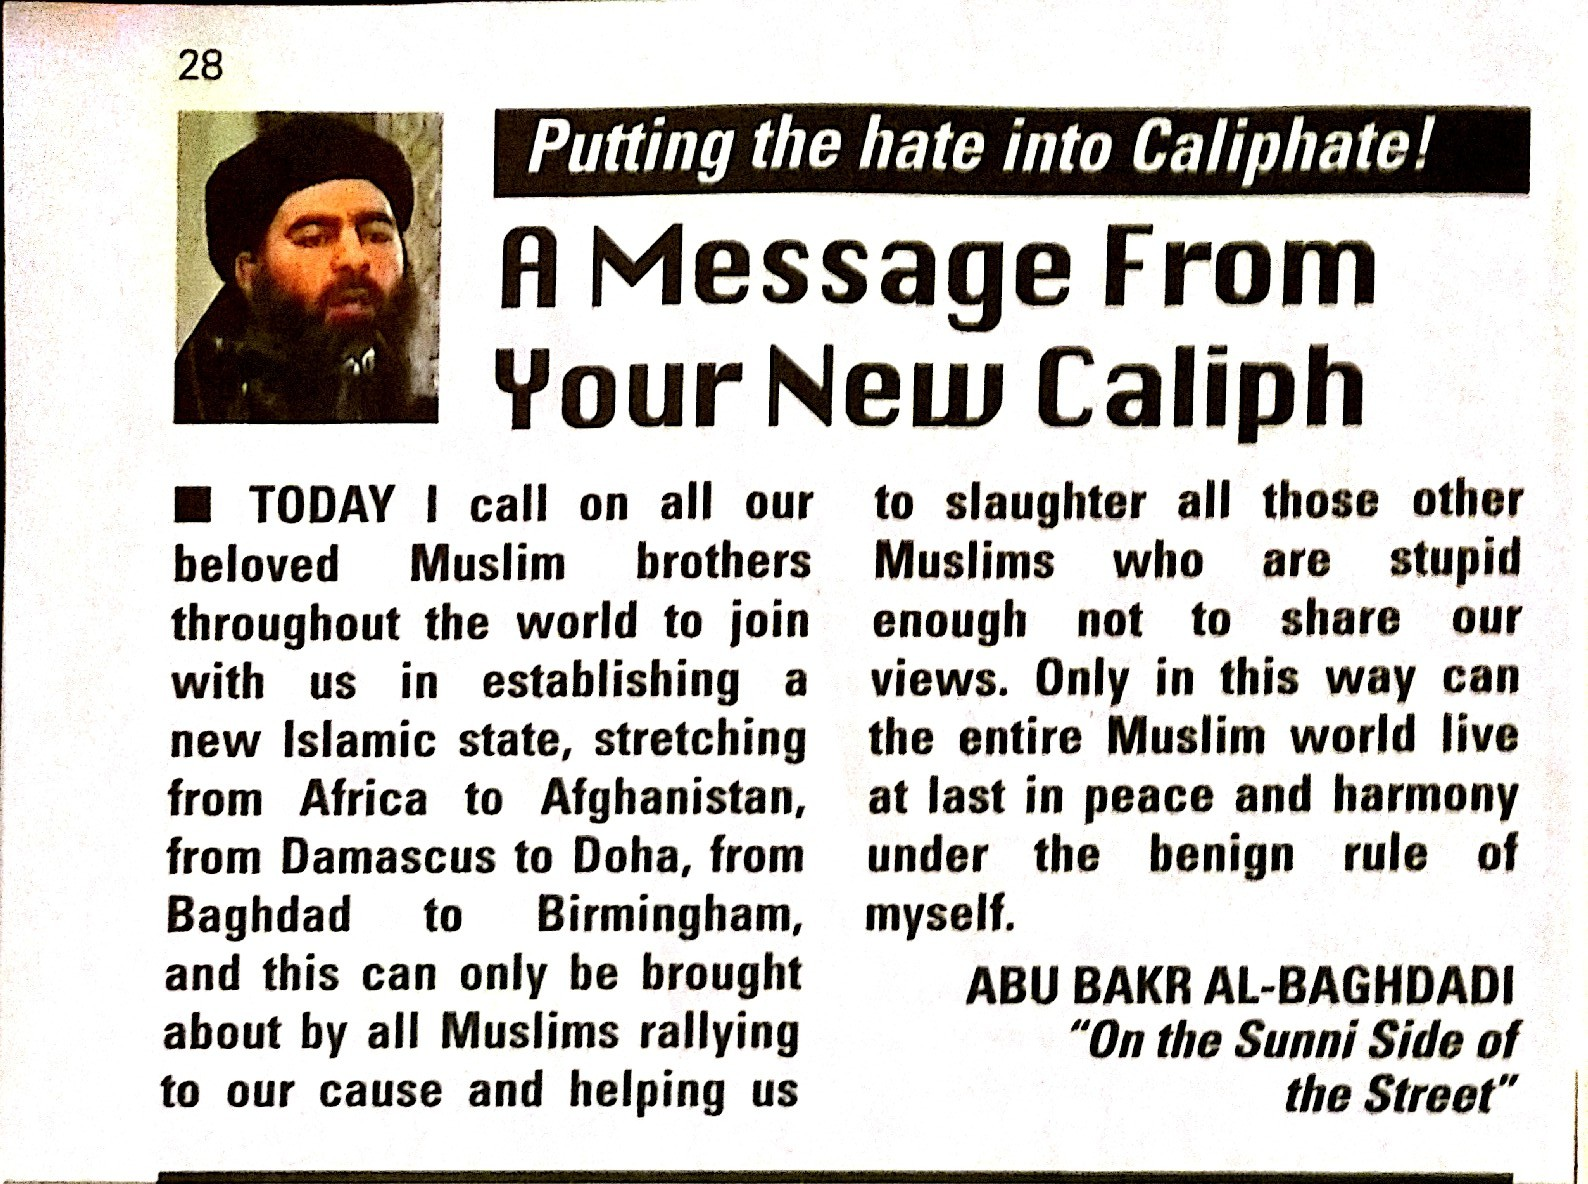 Message from New Caliph